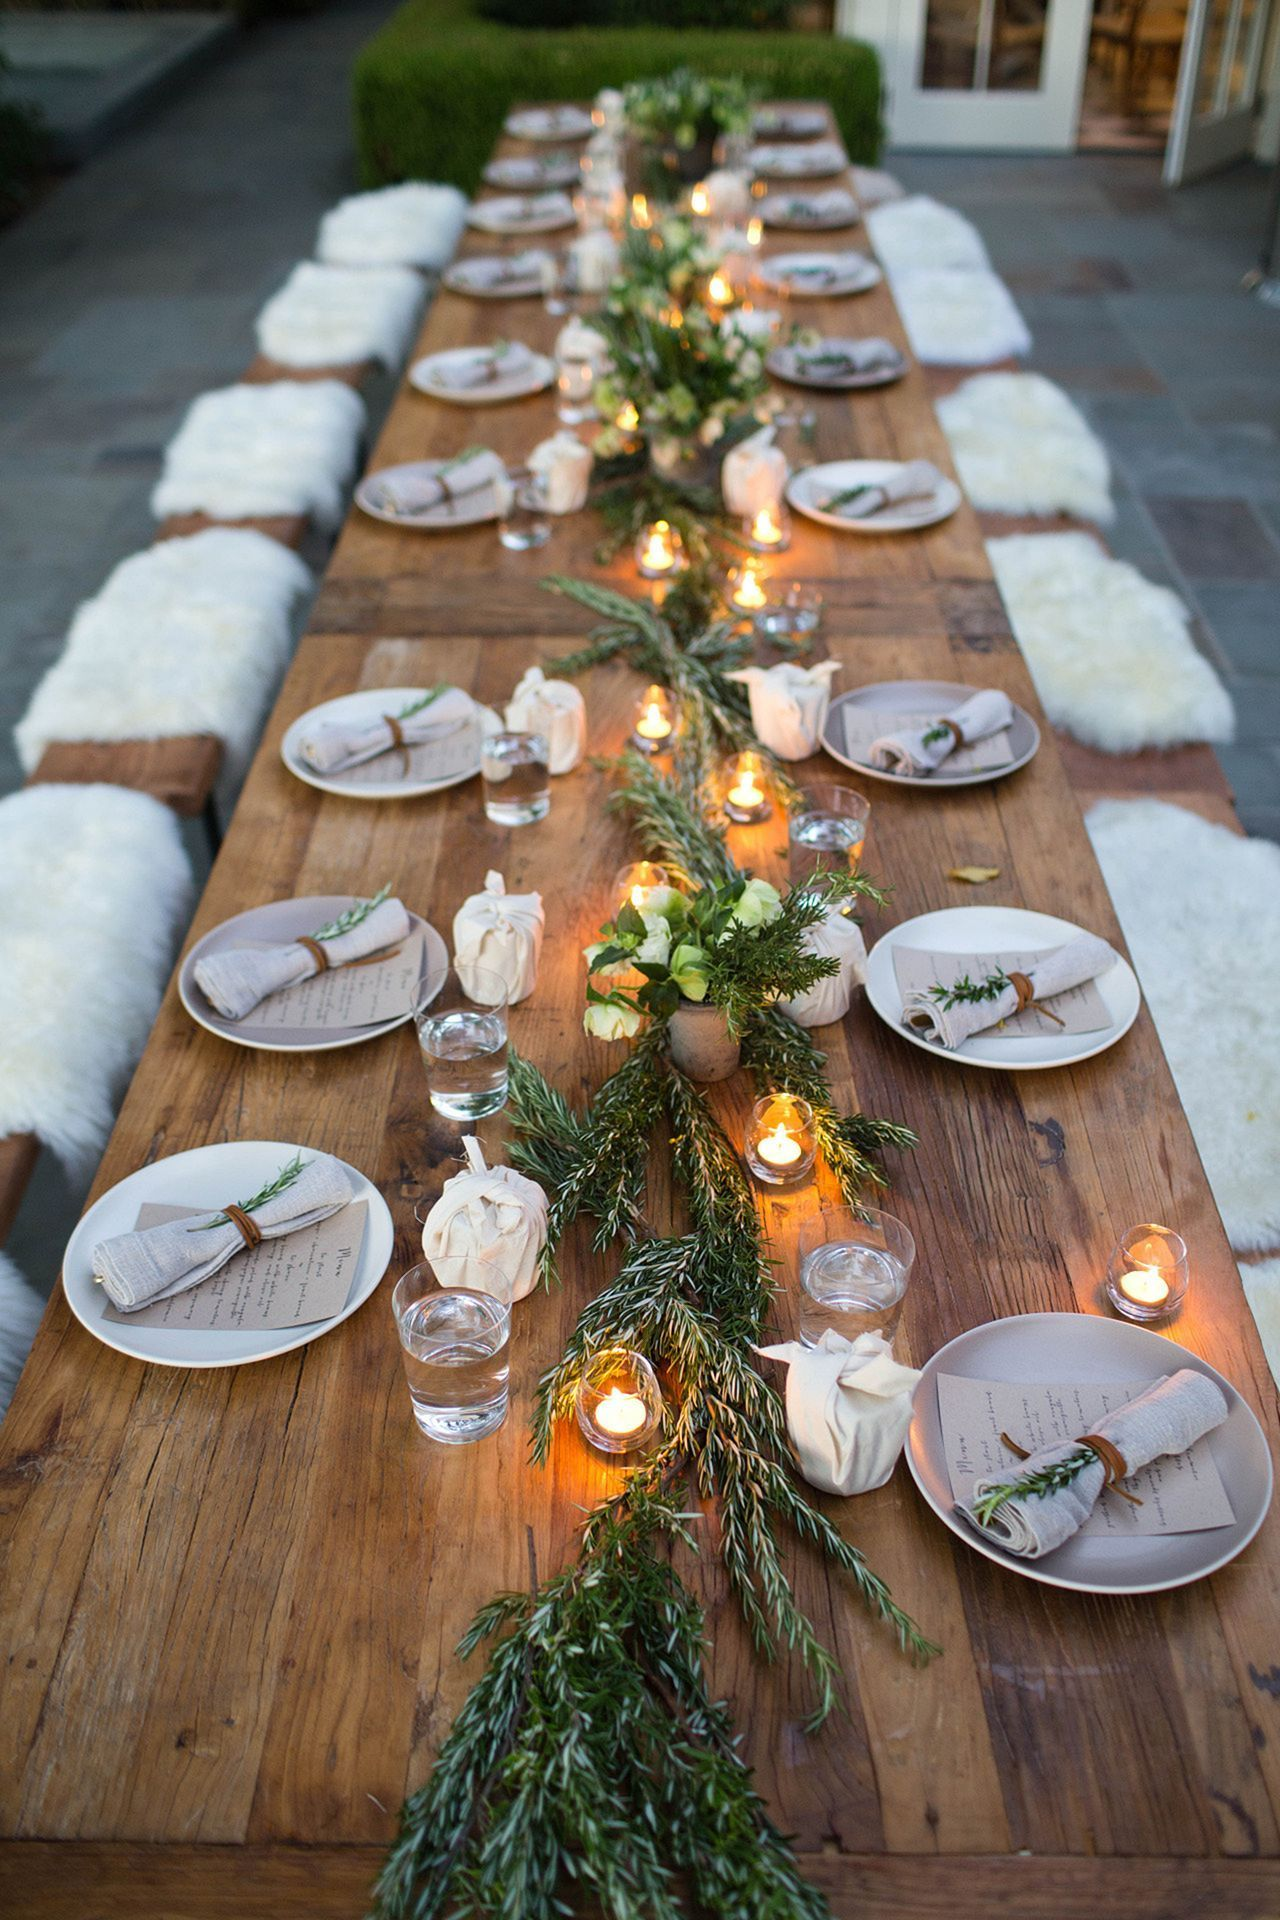 25 Creative Winter Wedding Ideas That Are Not Christmas Overloaded Rustic Wedding Table Christmas Table Christmas Table Settings